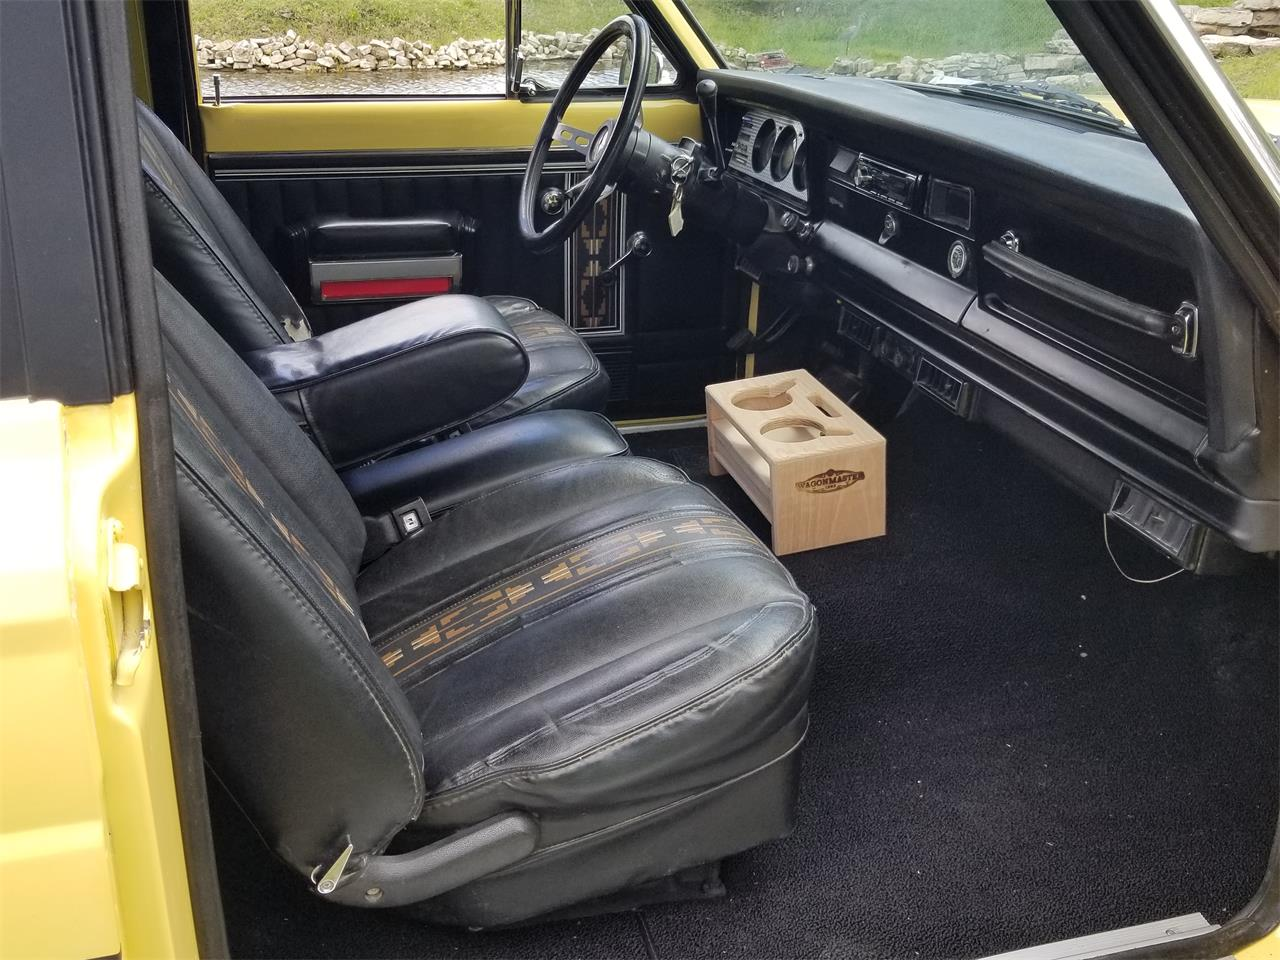 1979 Jeep Cherokee Chief for sale in Kerrville, TX – photo 19